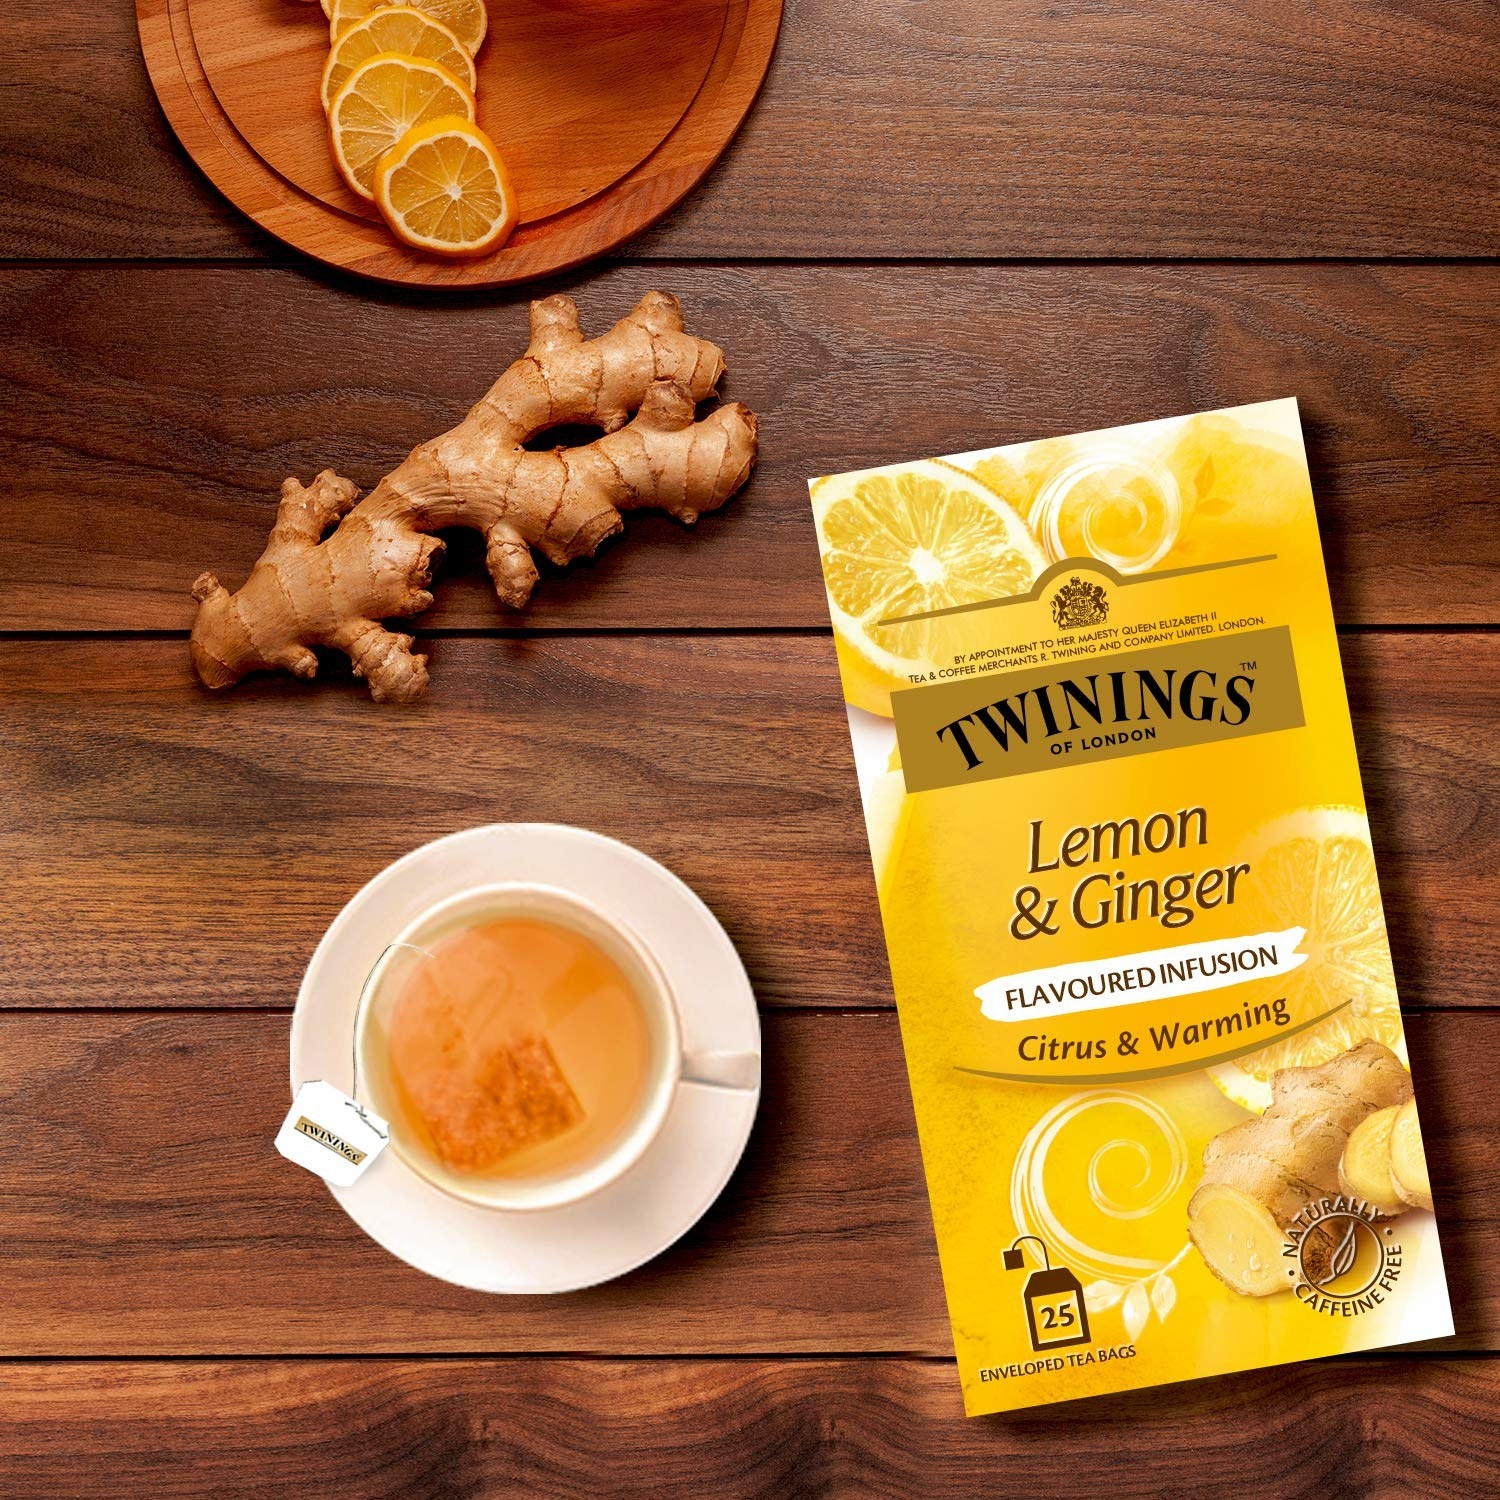 The box of tea placed next to lemon slices, some ginger, and a cup of tea